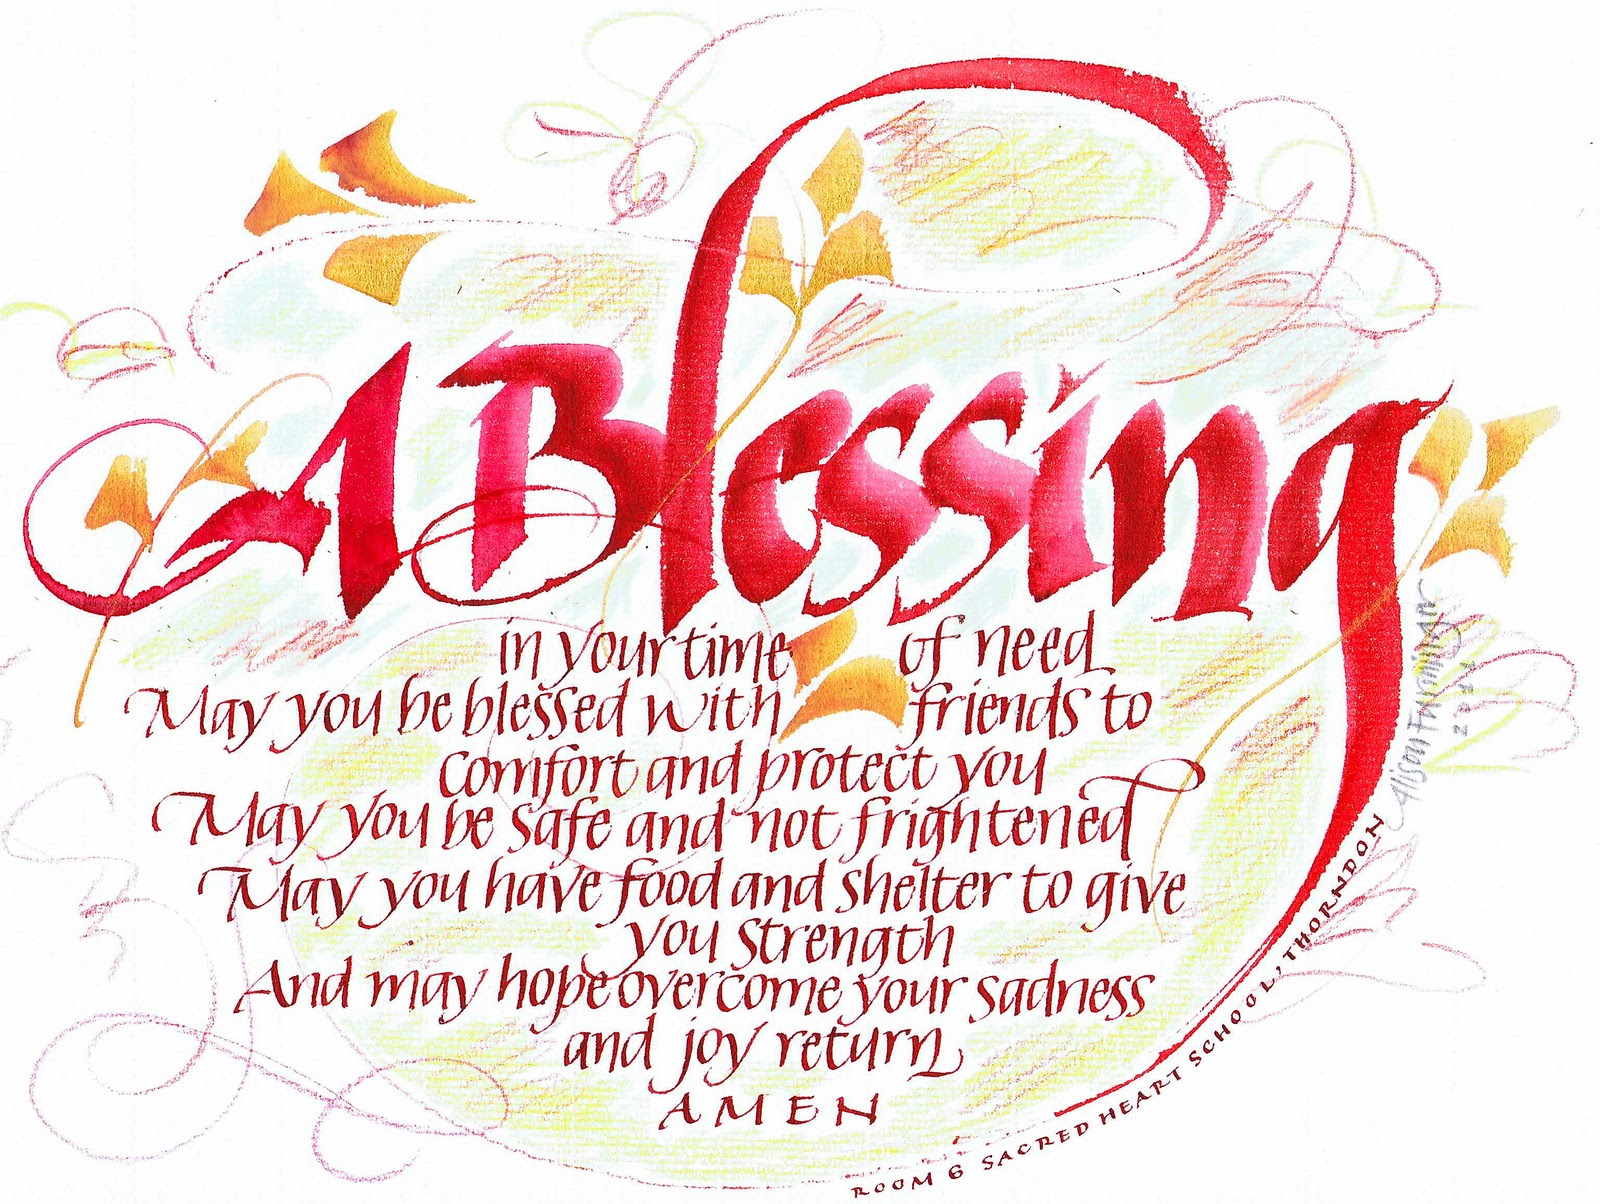 You Are A Blessing Quotes A Blessing In Time Of Need  Pray Like A Gourmet